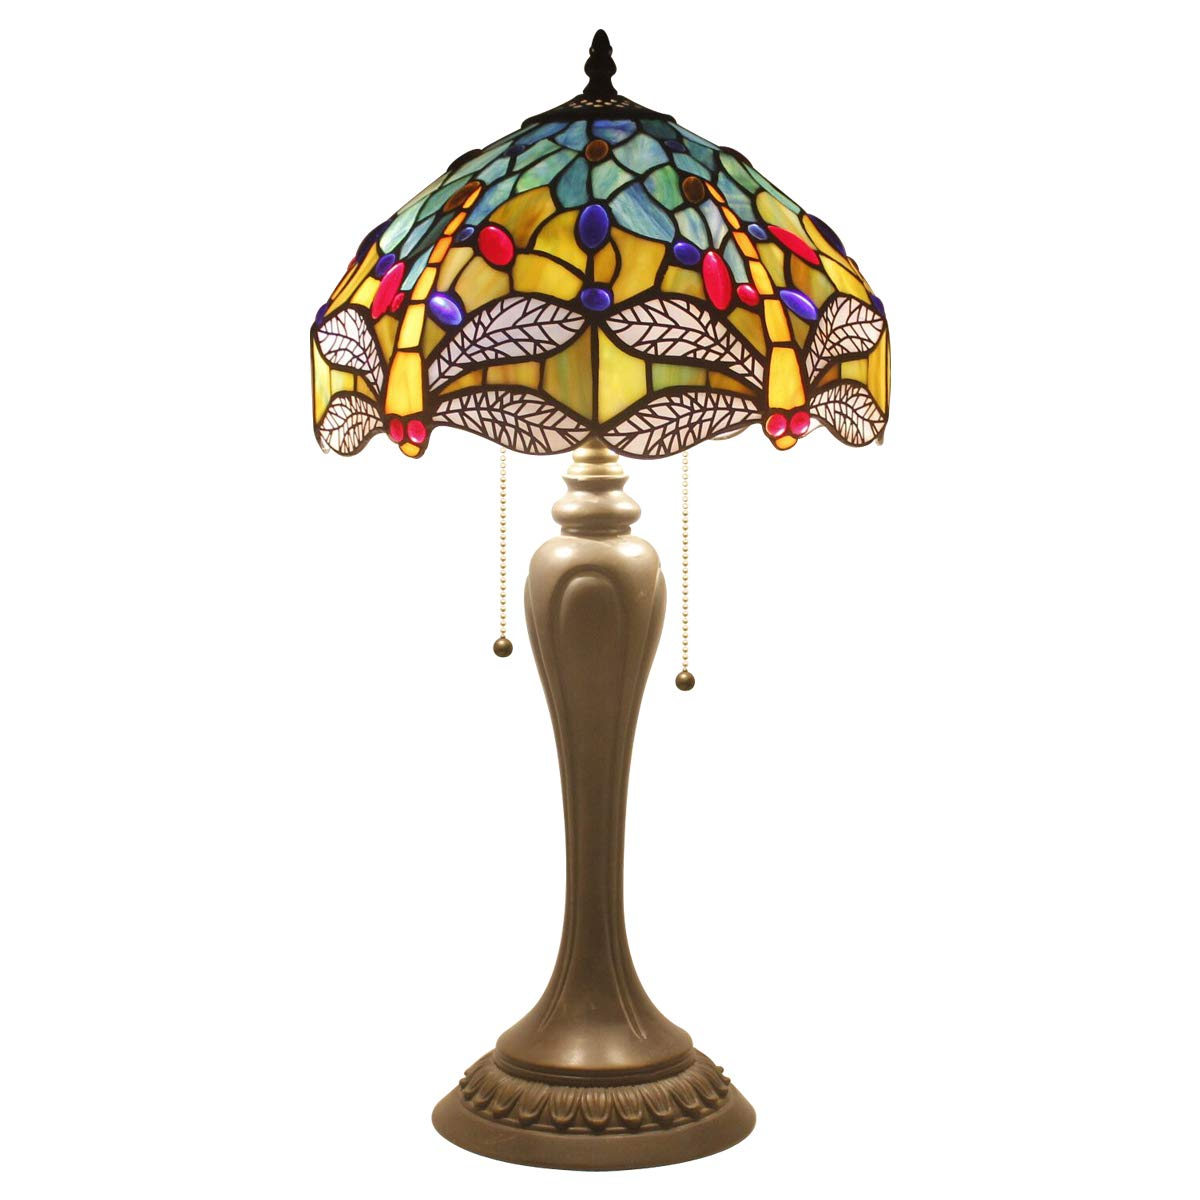 Tiffany Lamp Sea Blue Yellow Stained Glass and Crystal Bead Dragonfly Style Table Lamps Wide 12 Height 22 Inch for Living Room Antique Desk Beside Bedroom S128 WERFACTORY